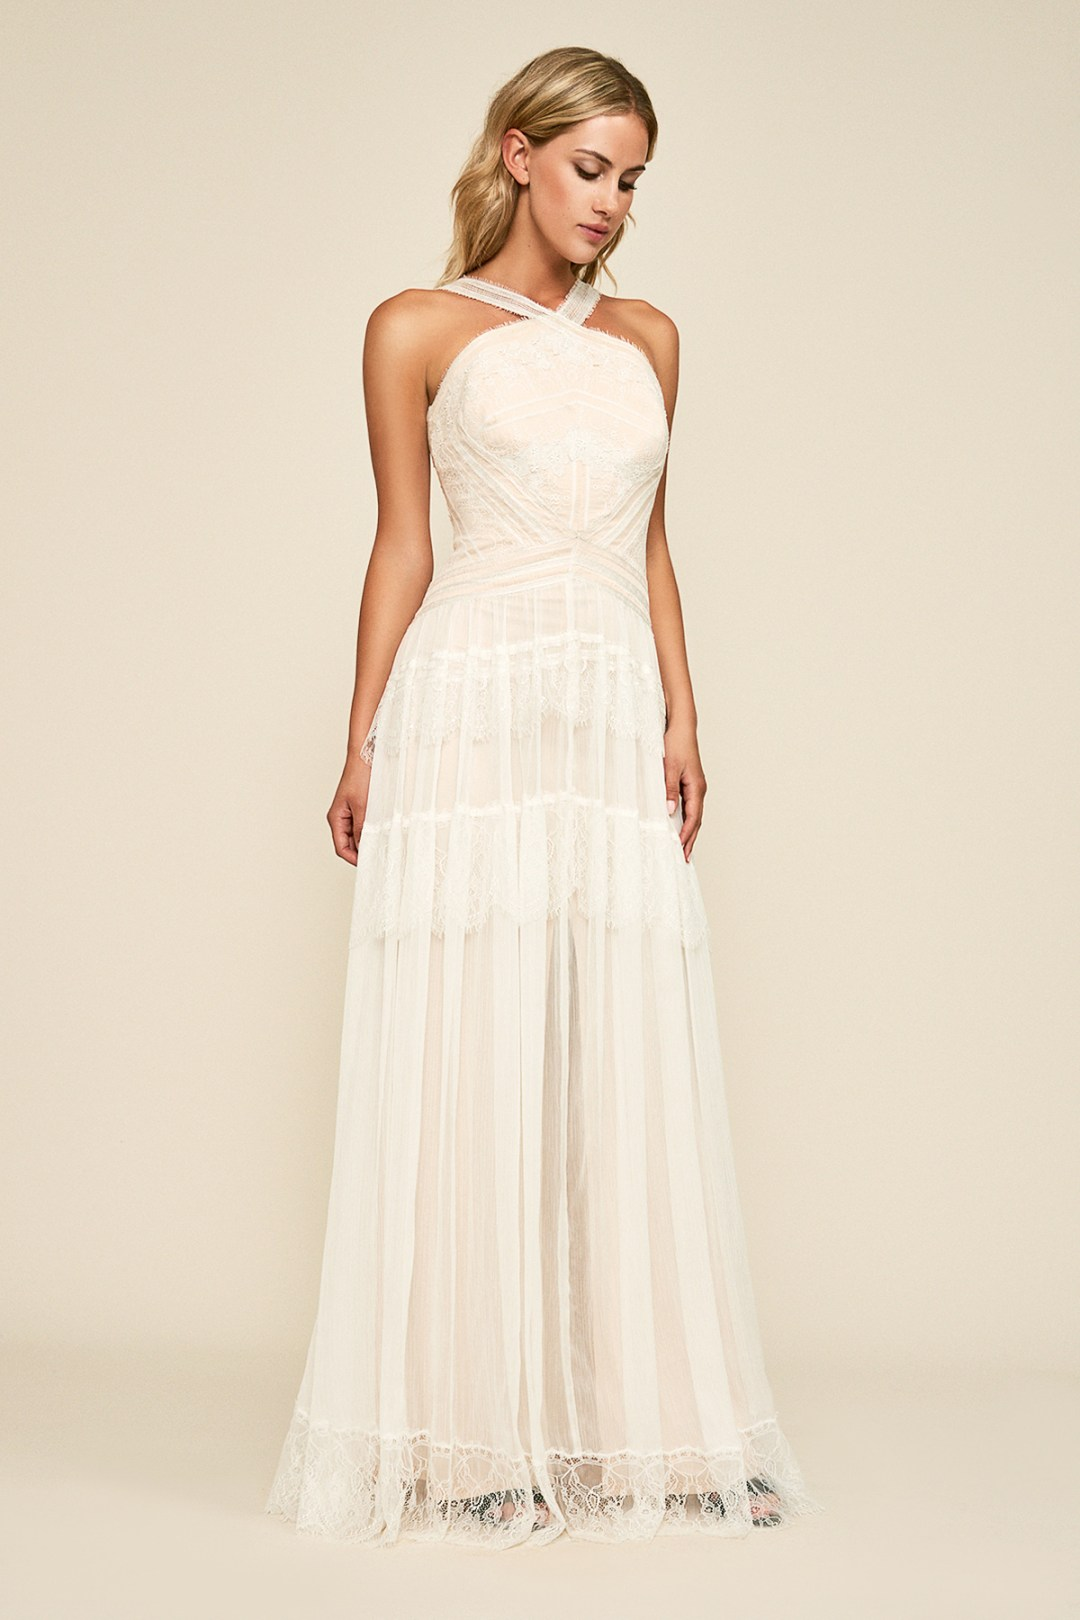 FOR IMMEDIATE RELEASE: TADASHI SHOJI COLLECTION NEW ARRIVALS + Top ...